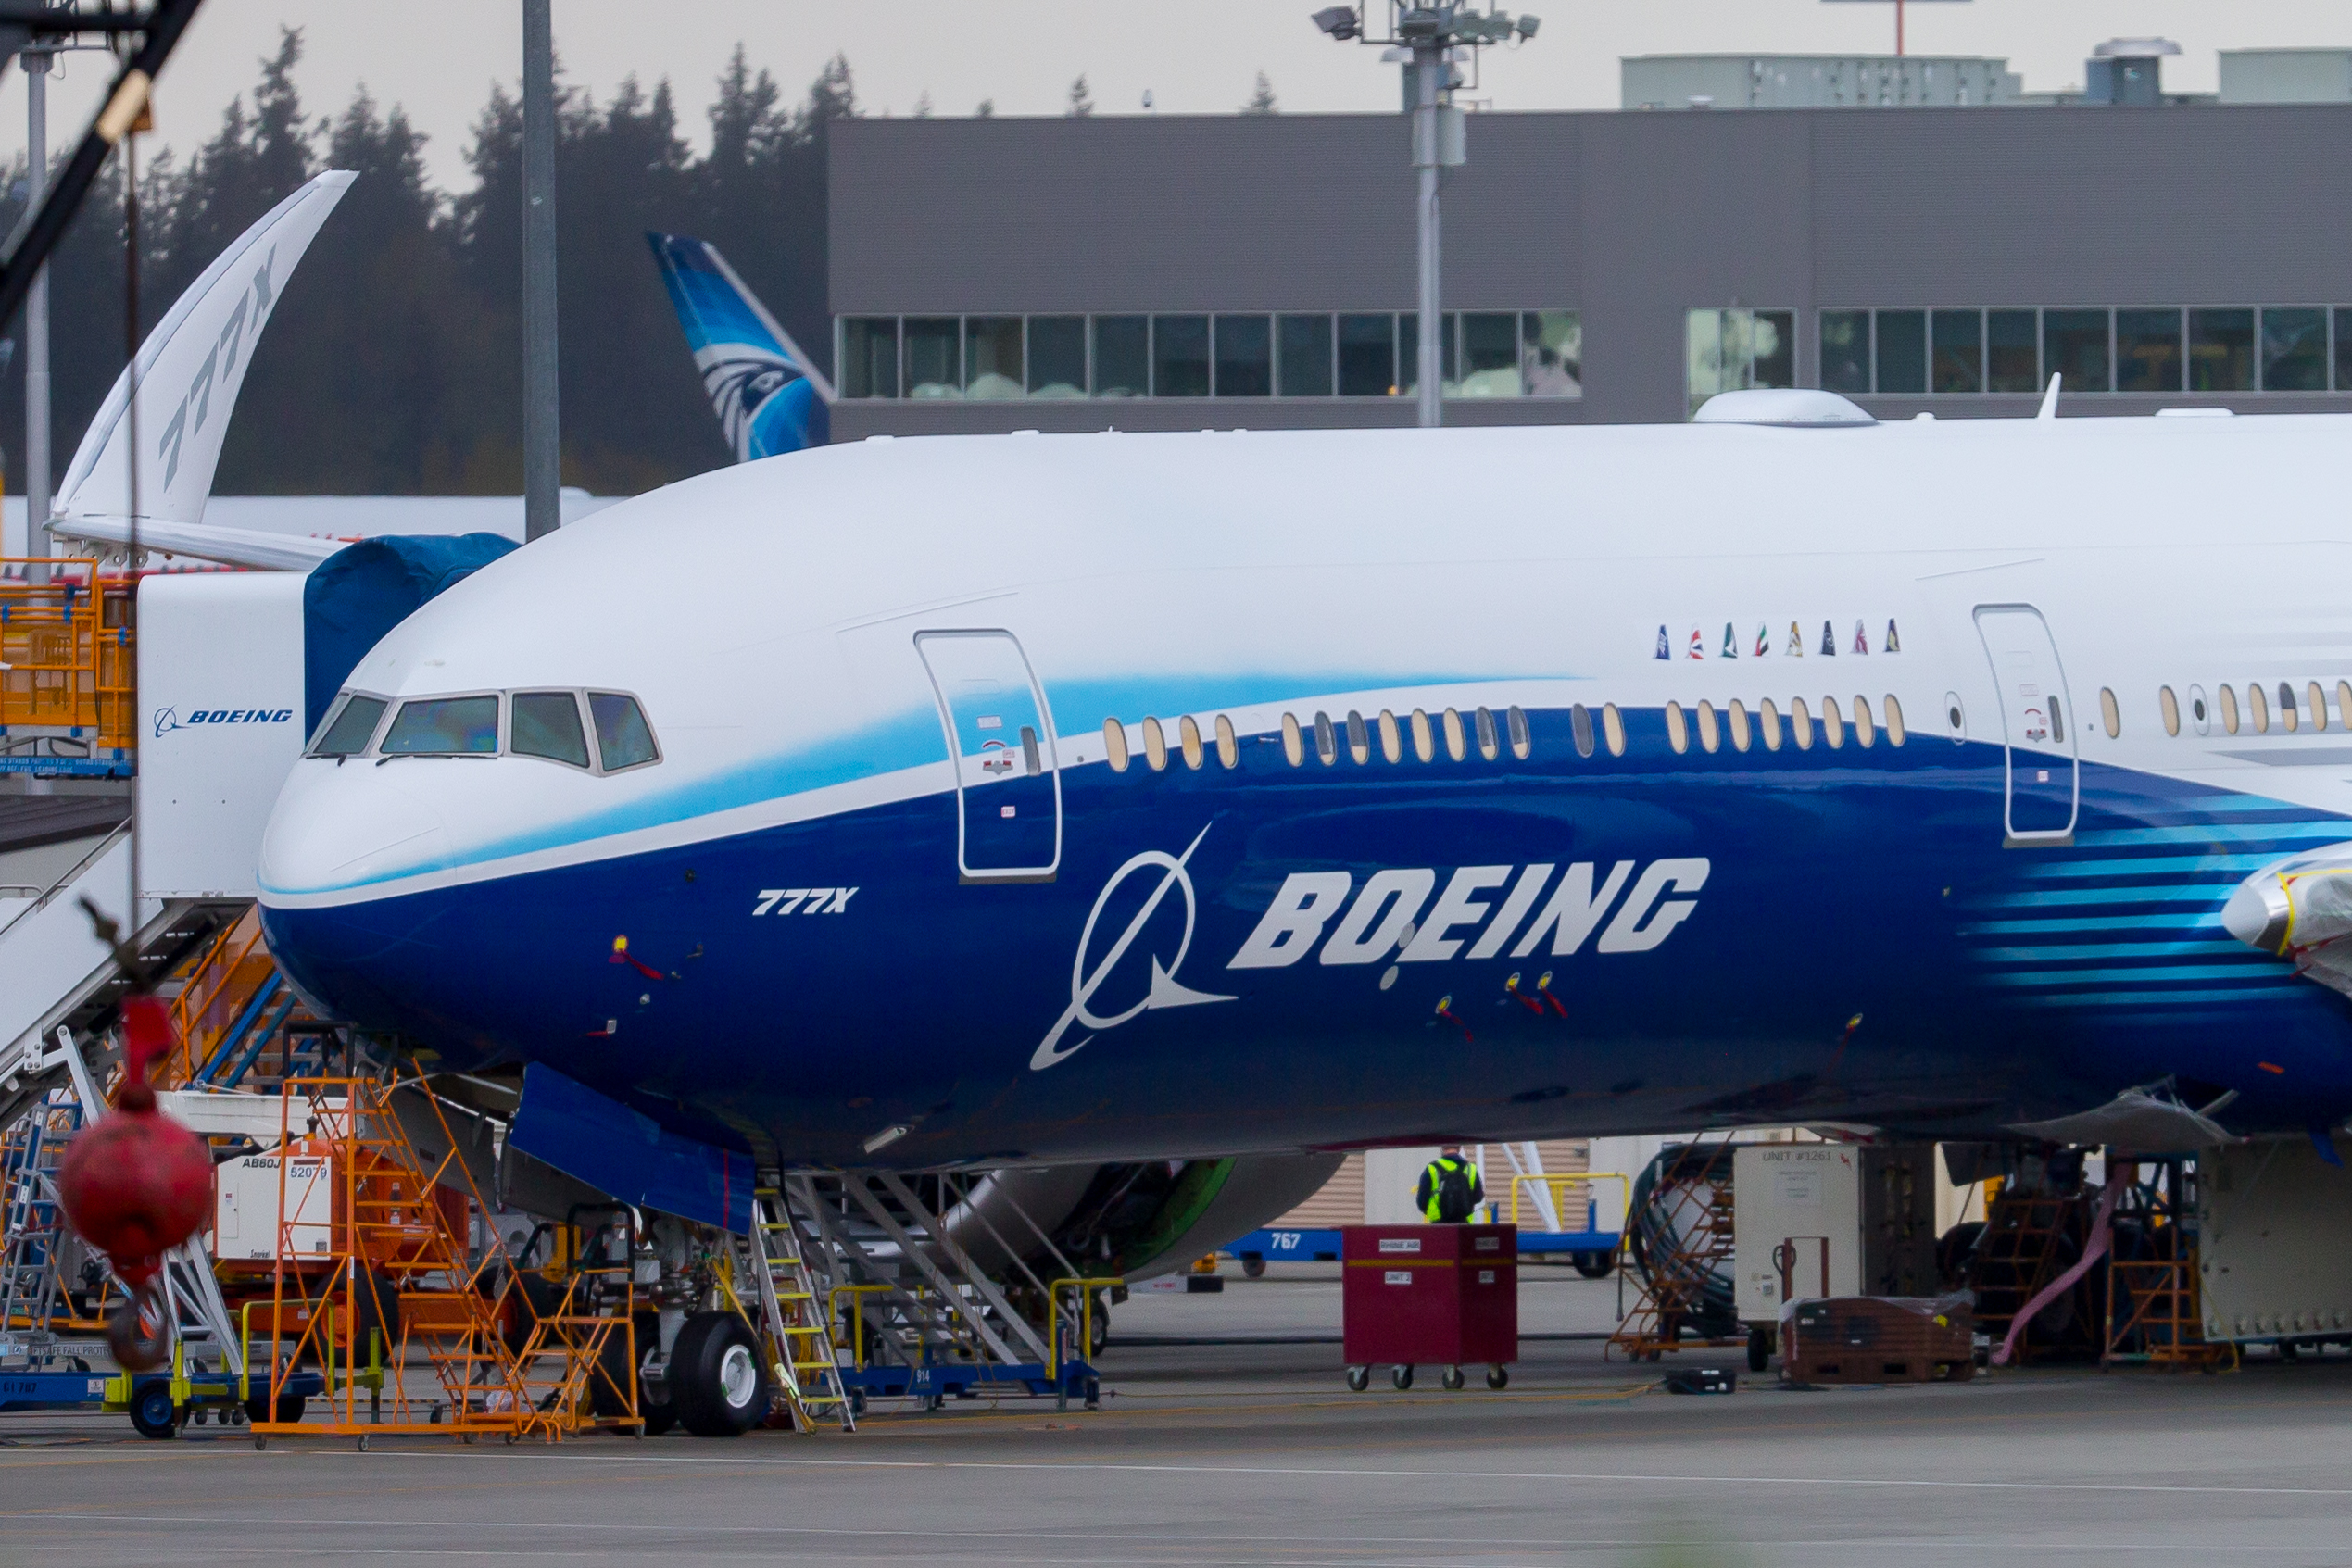 Inside Boeing: Sadness, frustration, anger, uncertainty